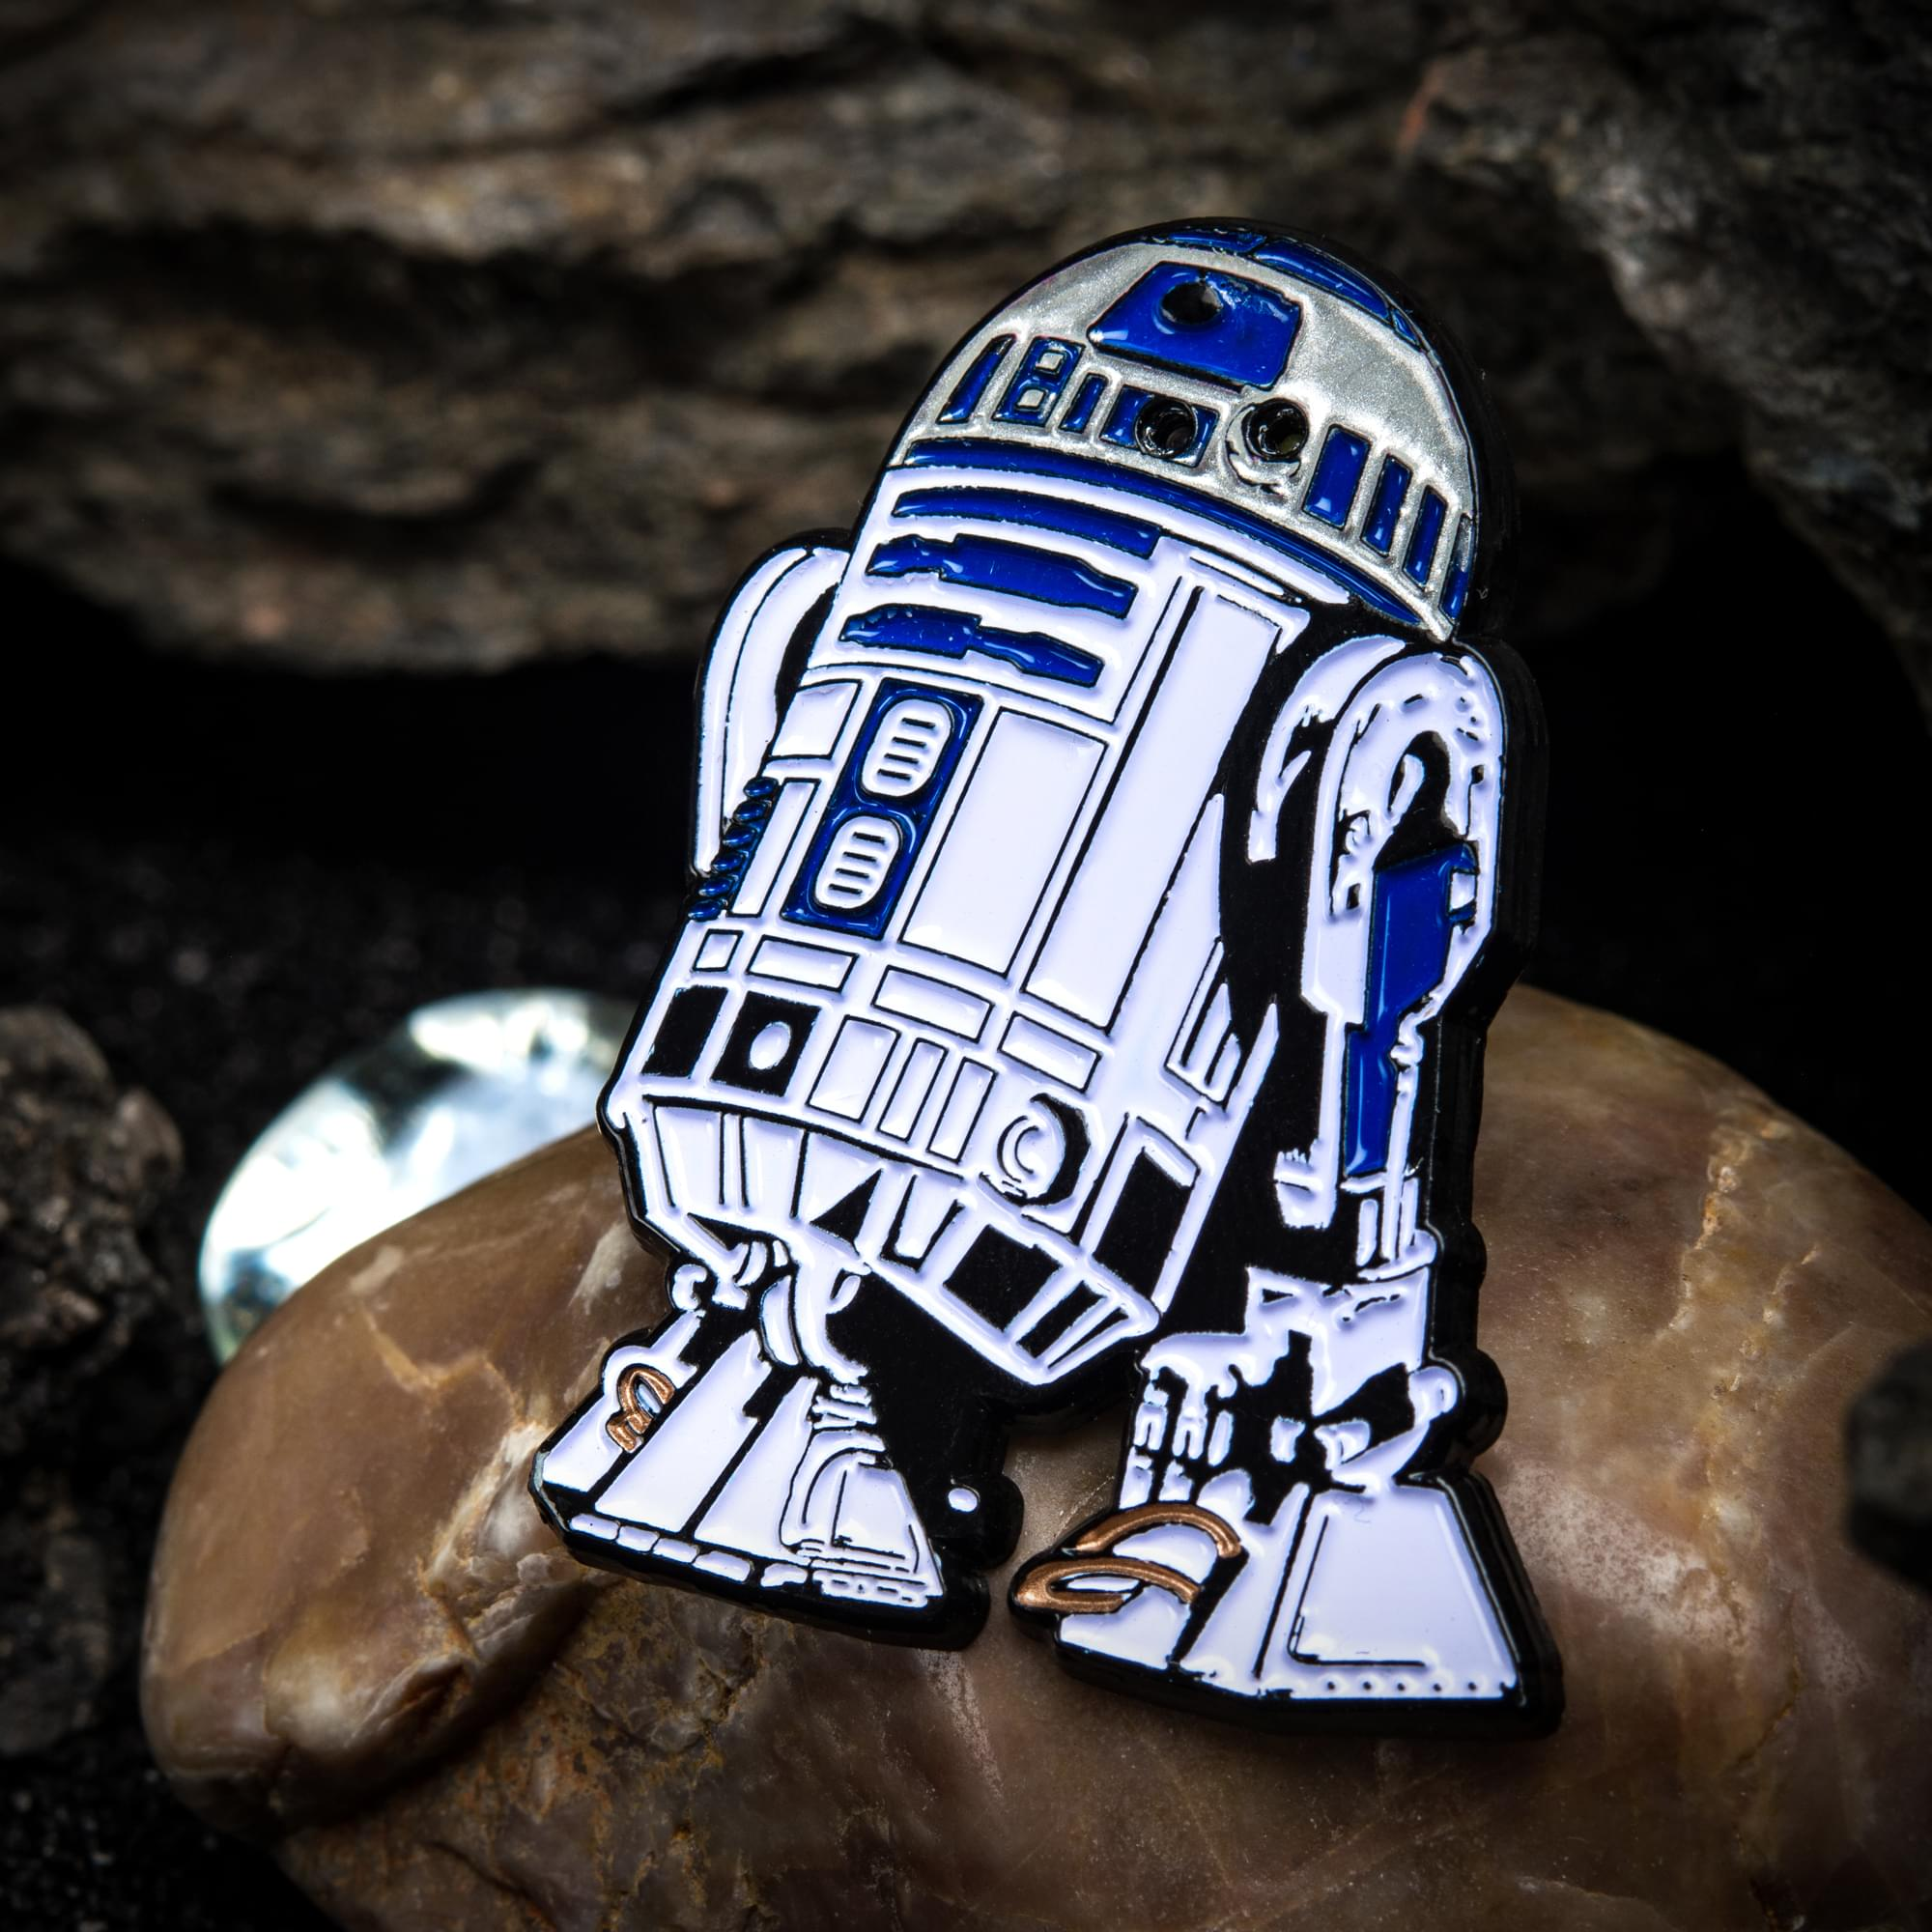 Star Wars R2-D2 Light Up Enamel Pin